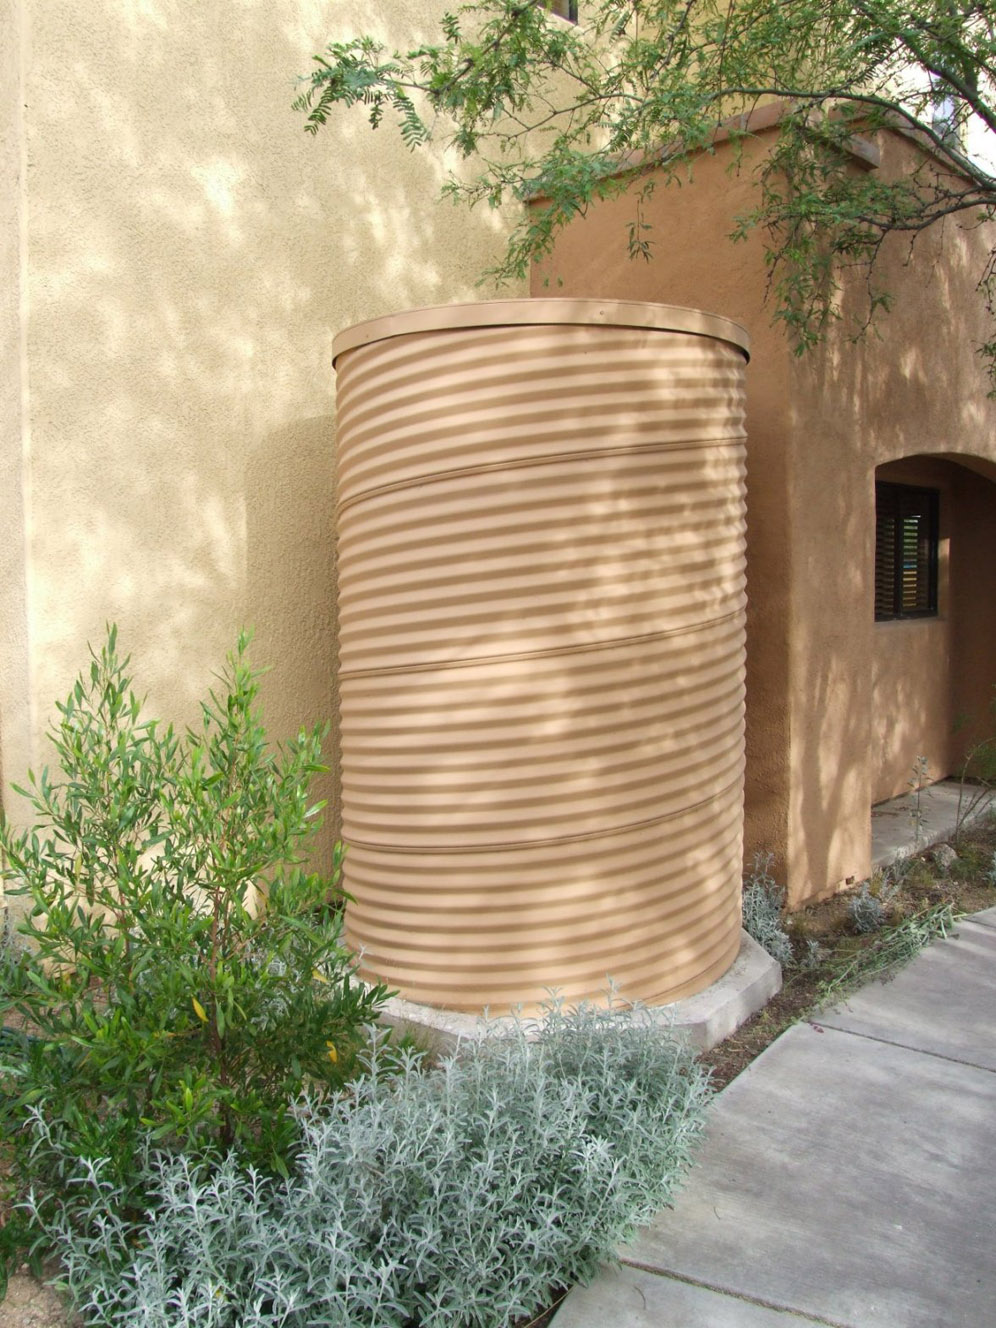 Sand Colored Cistern